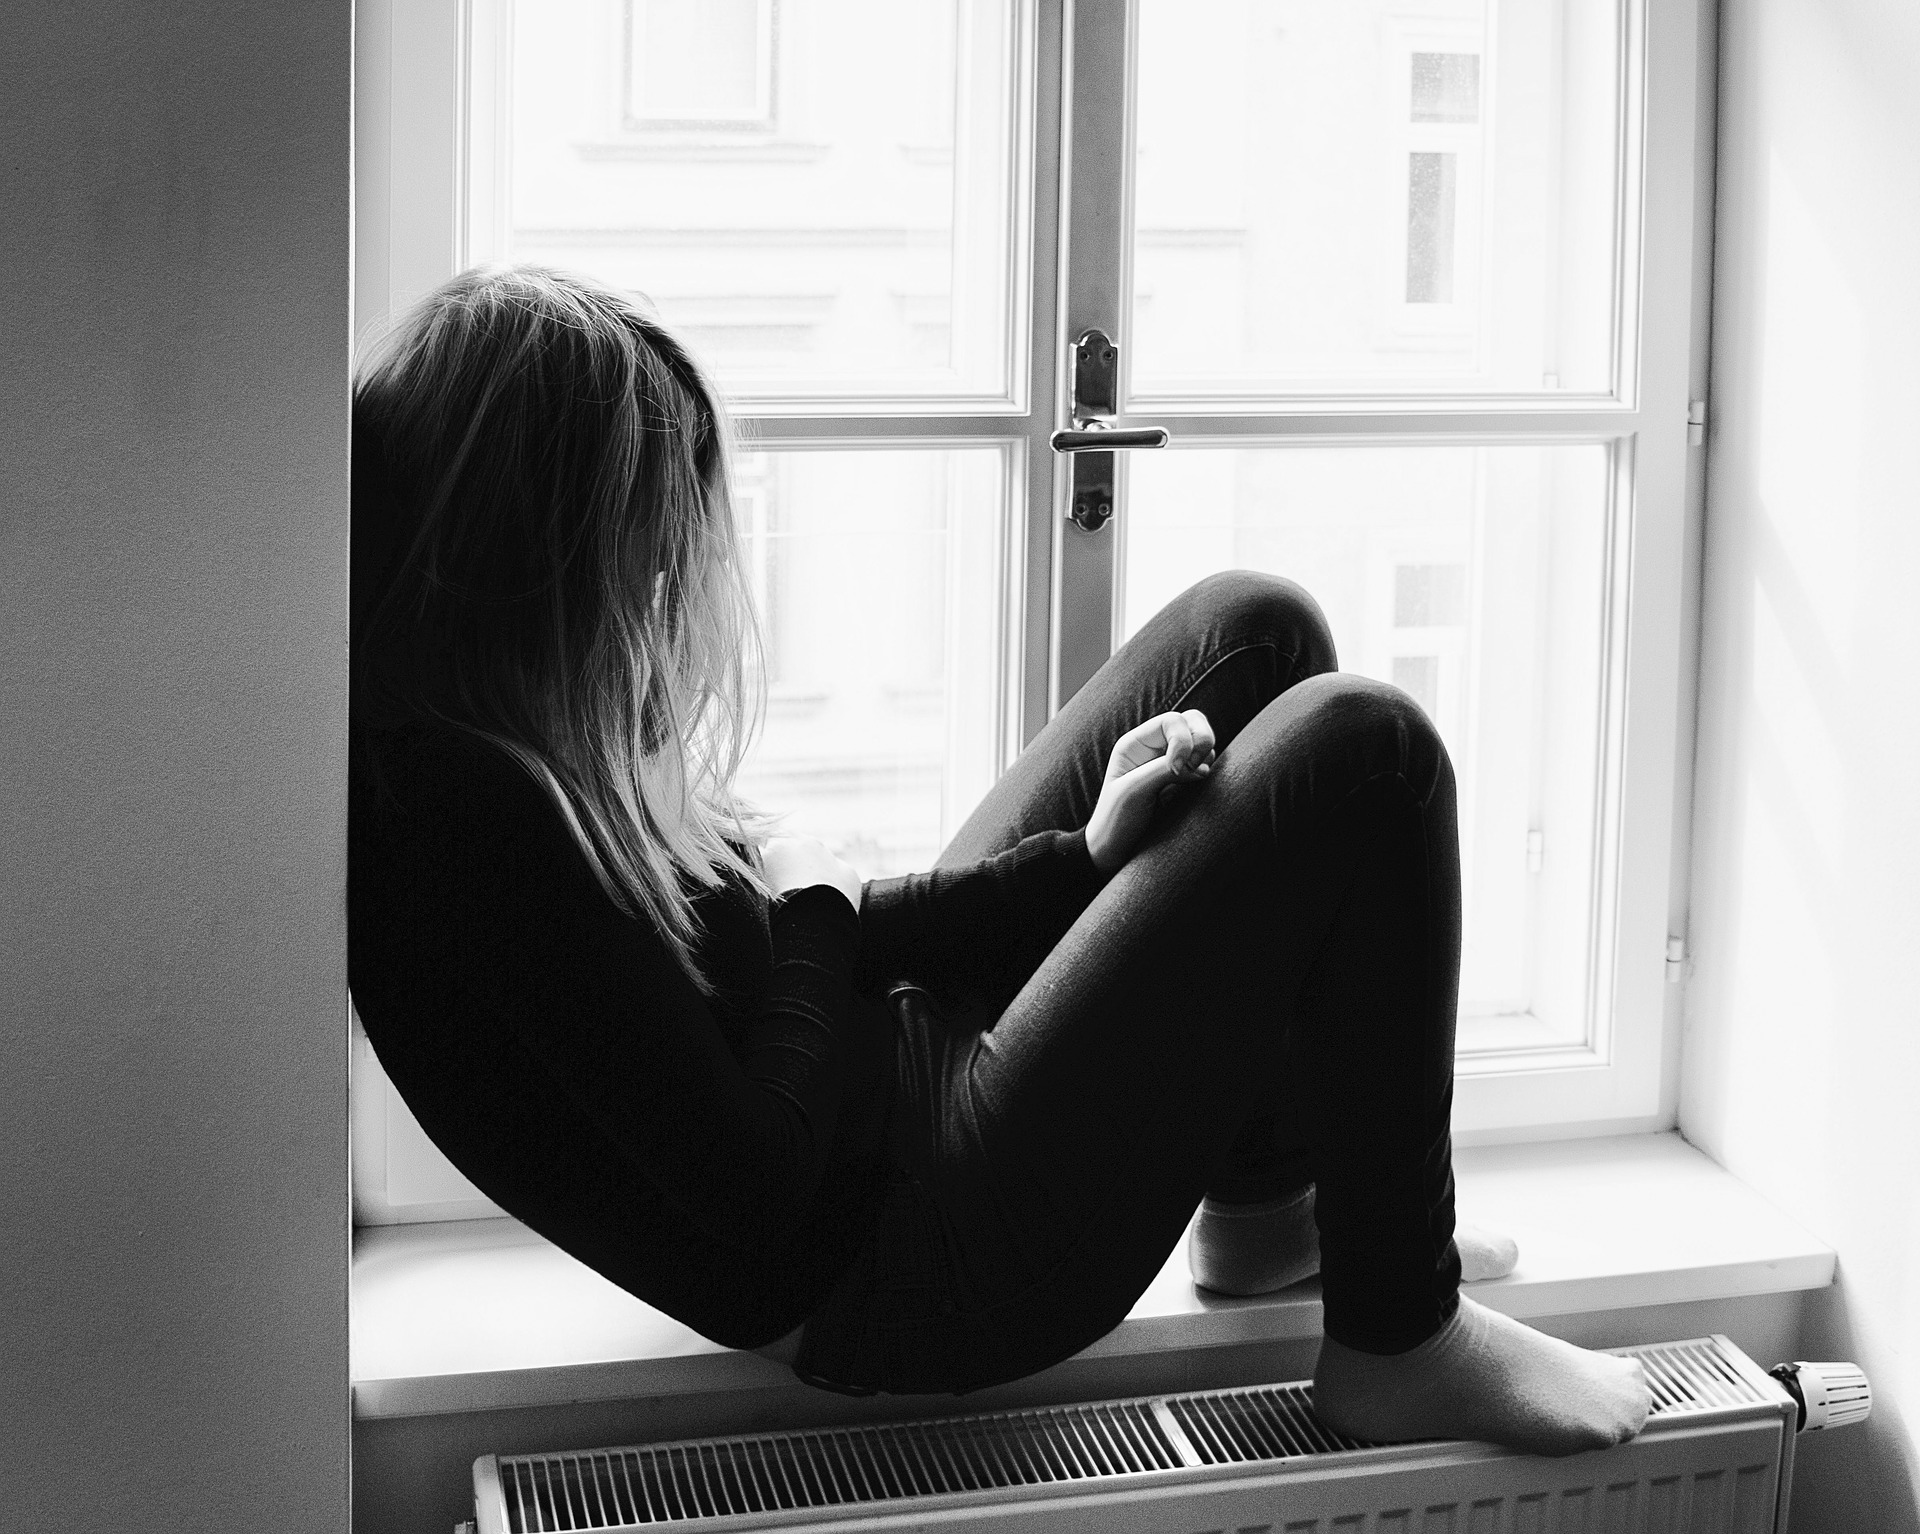 5 common signs ofdepression that suffocate and cause extreme pain